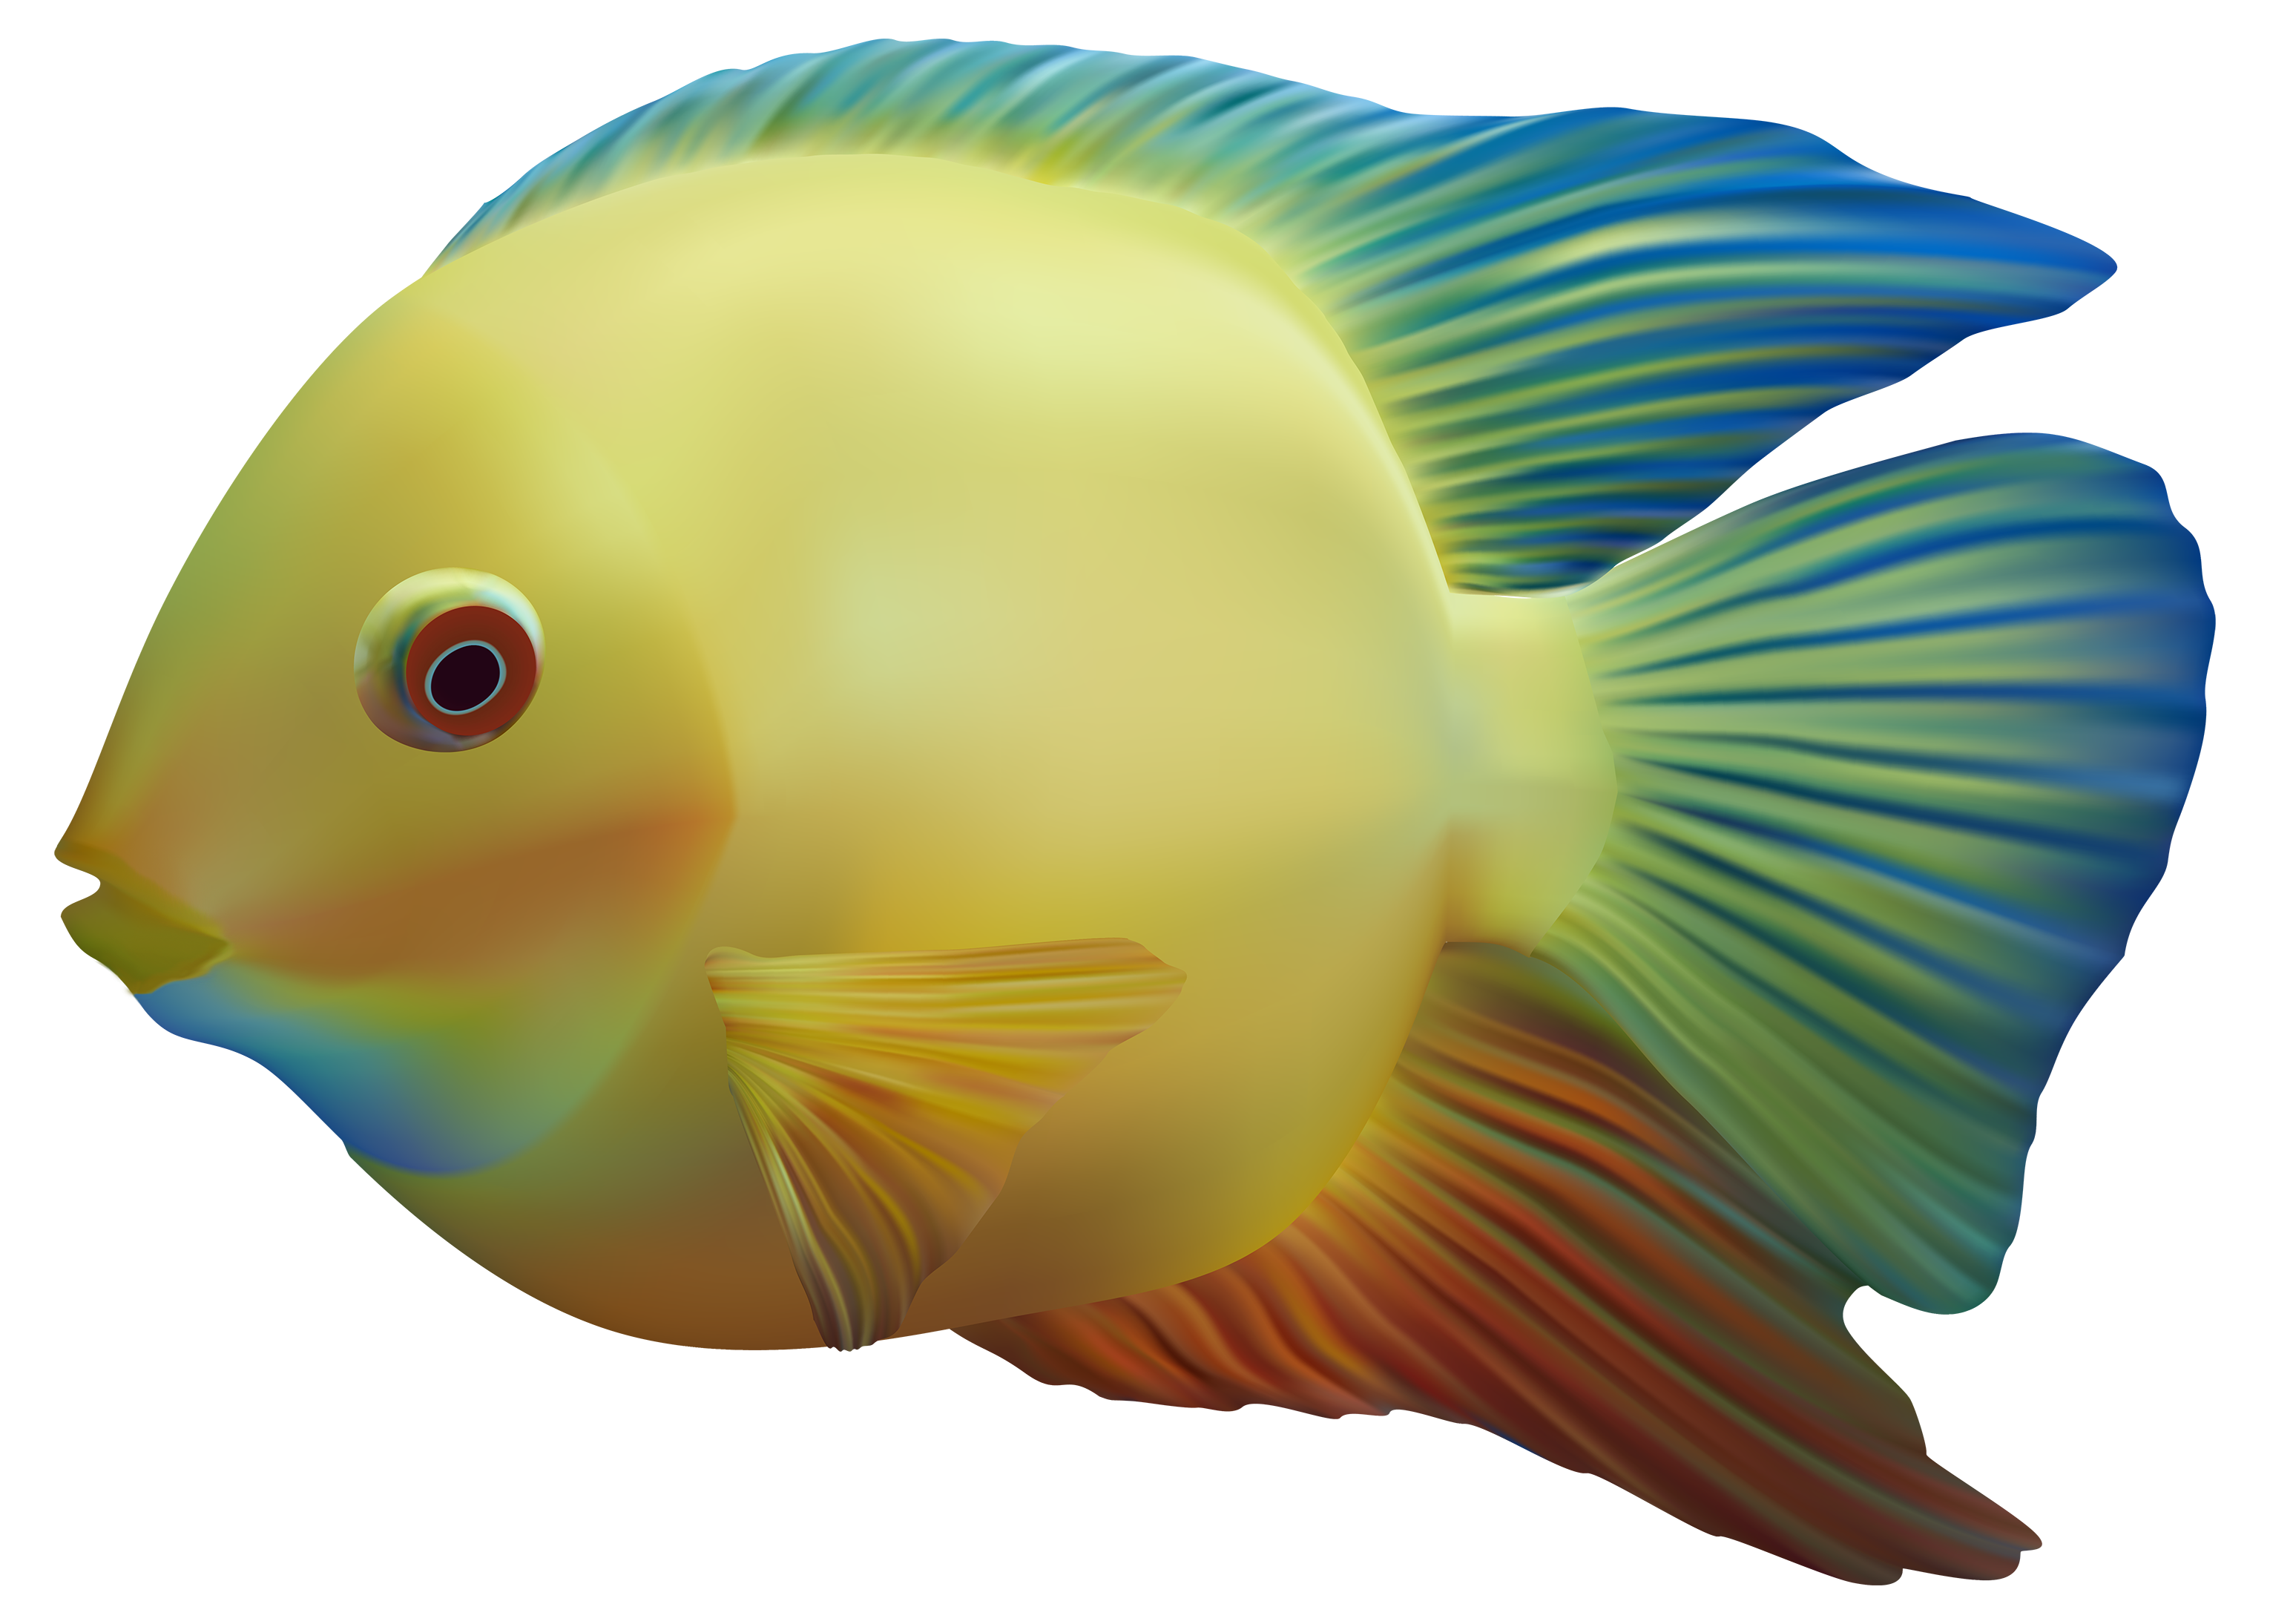 Ocean animals png. Fish image free download